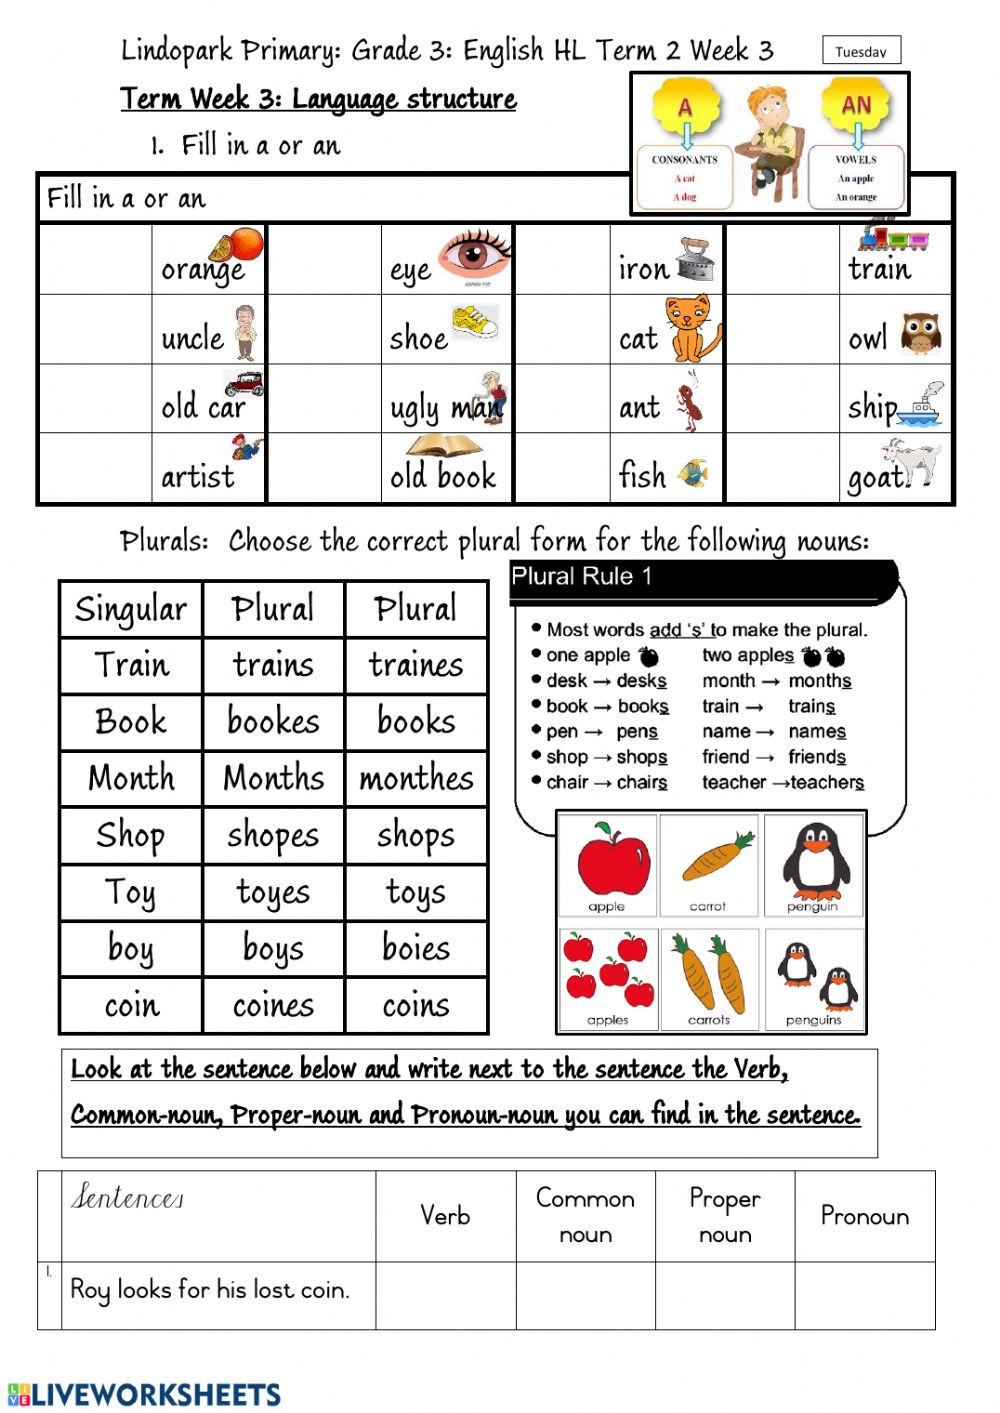 Phonics Worksheets Grade 3 Grade 3 English Hl Term 1 Week 3 Phonic Oi Worksheet 2